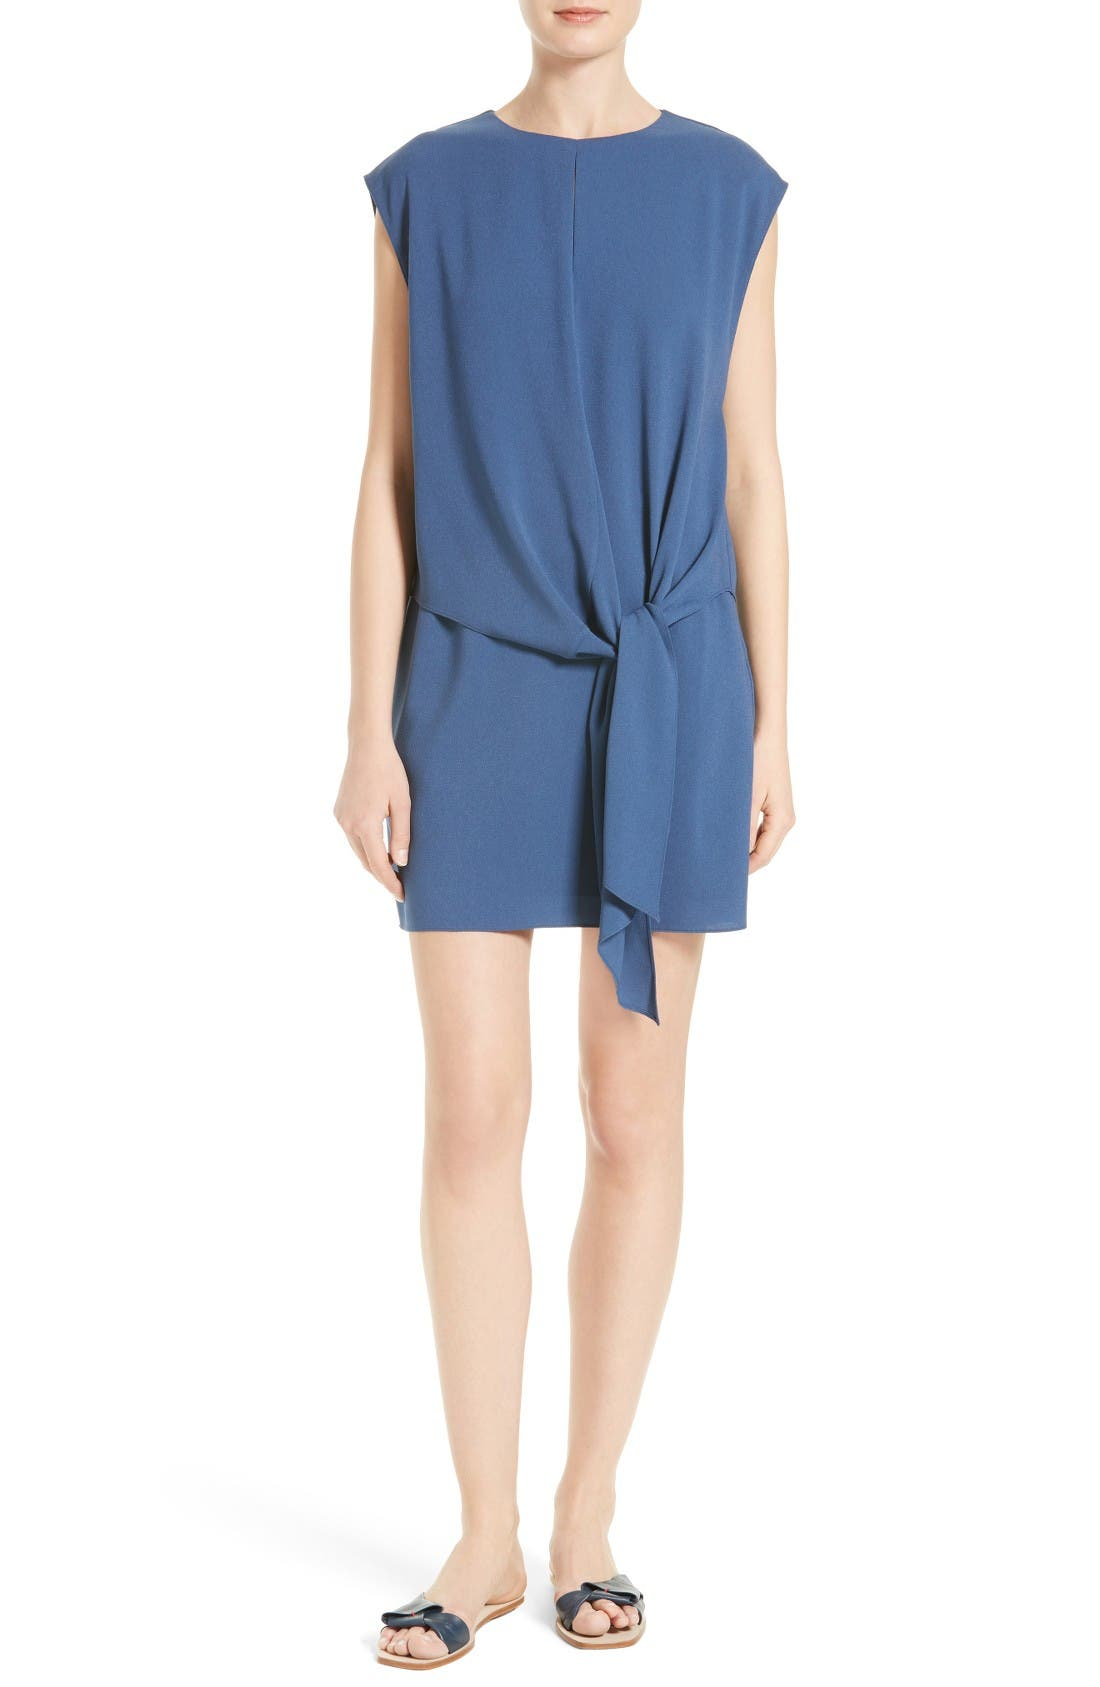 Tibi Savanna Crepe Shift Dress